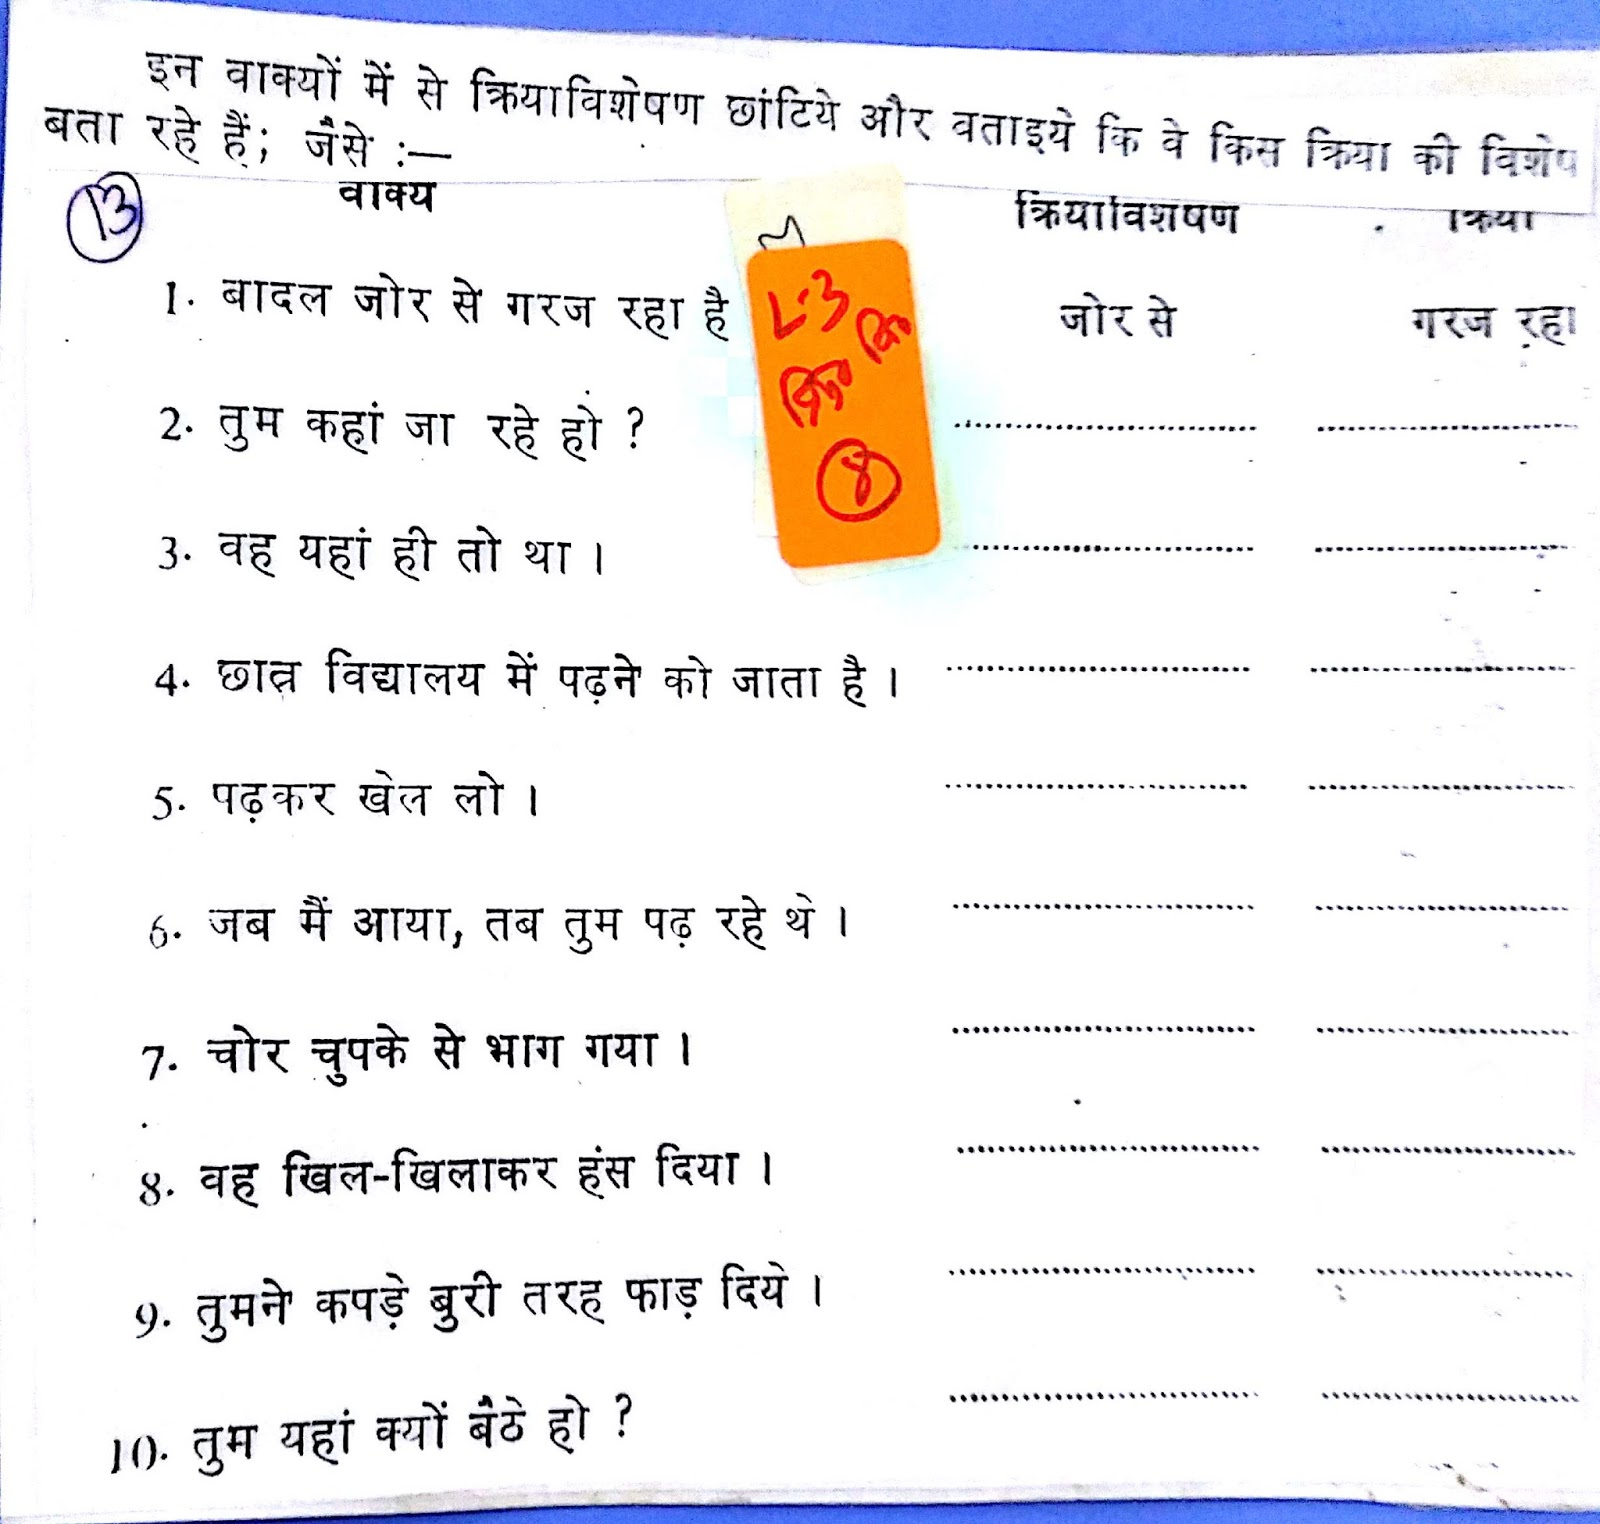 medium resolution of Answer Key Preposition Worksheets For Grade 2 With Answers - Leftwings